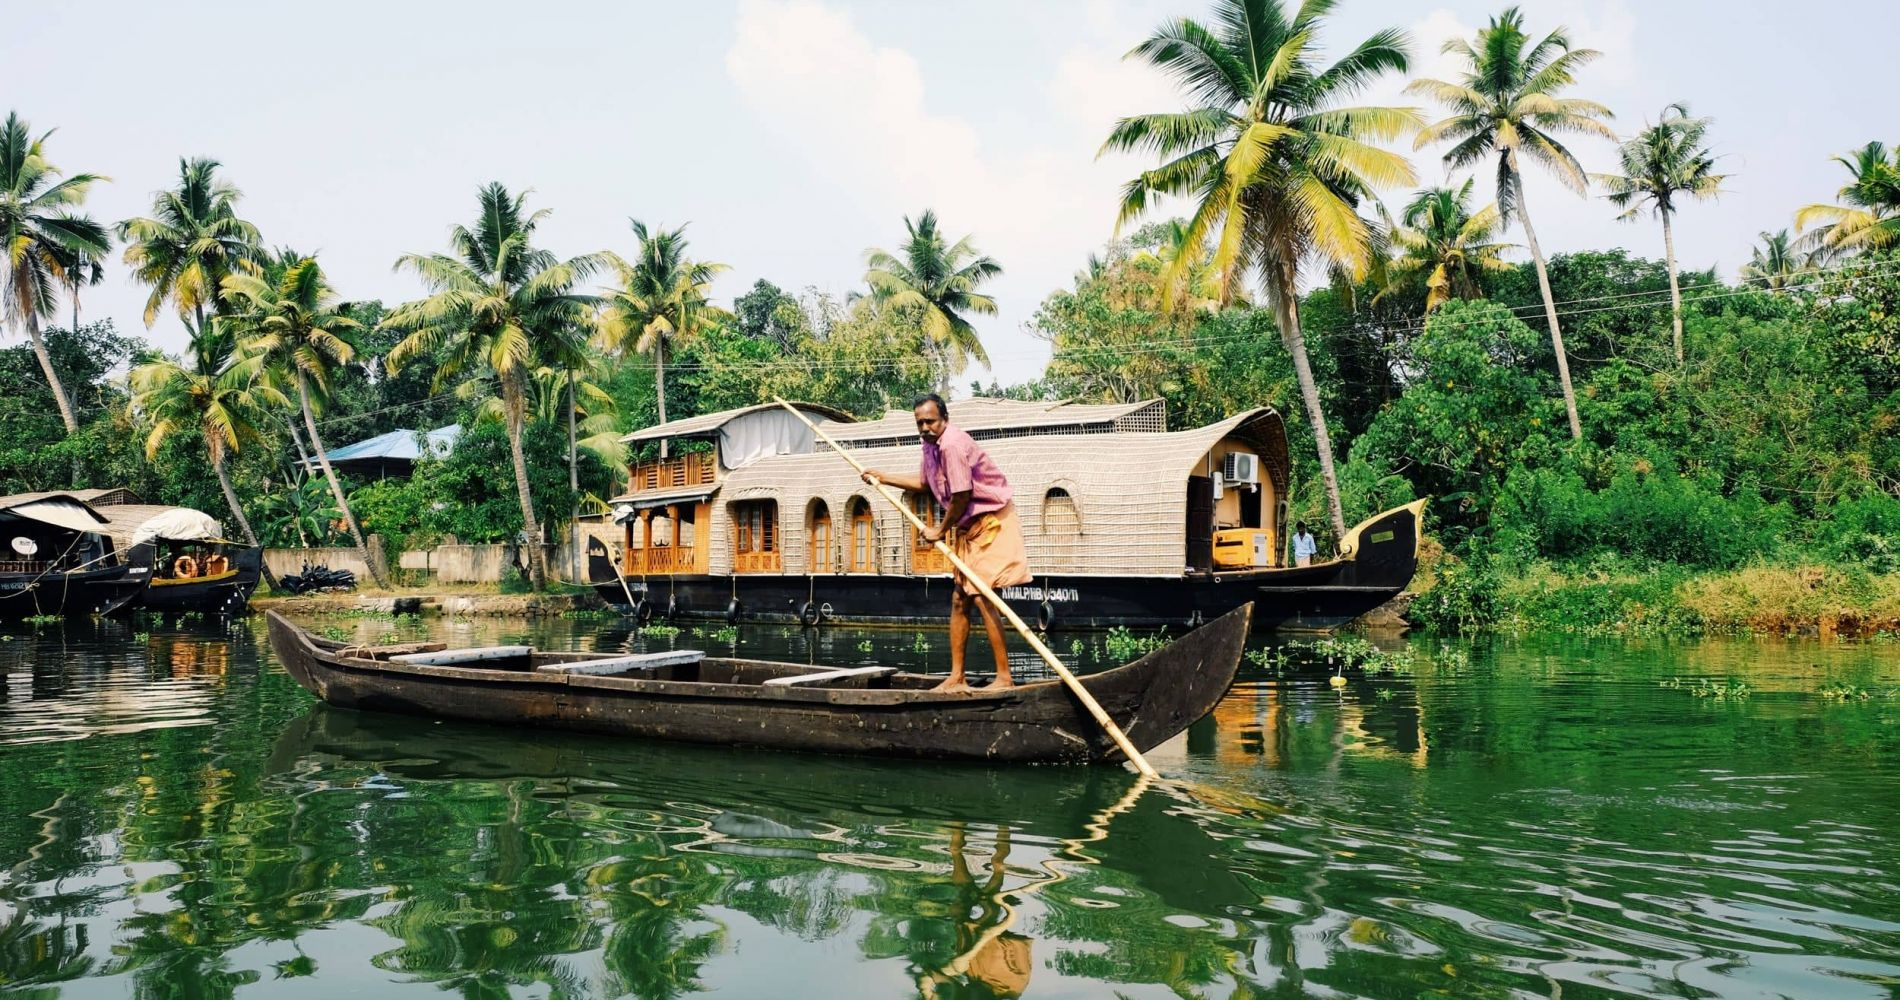 Cruise for Two on a Mysterious Alappuzha Backwaters Houseboat in India